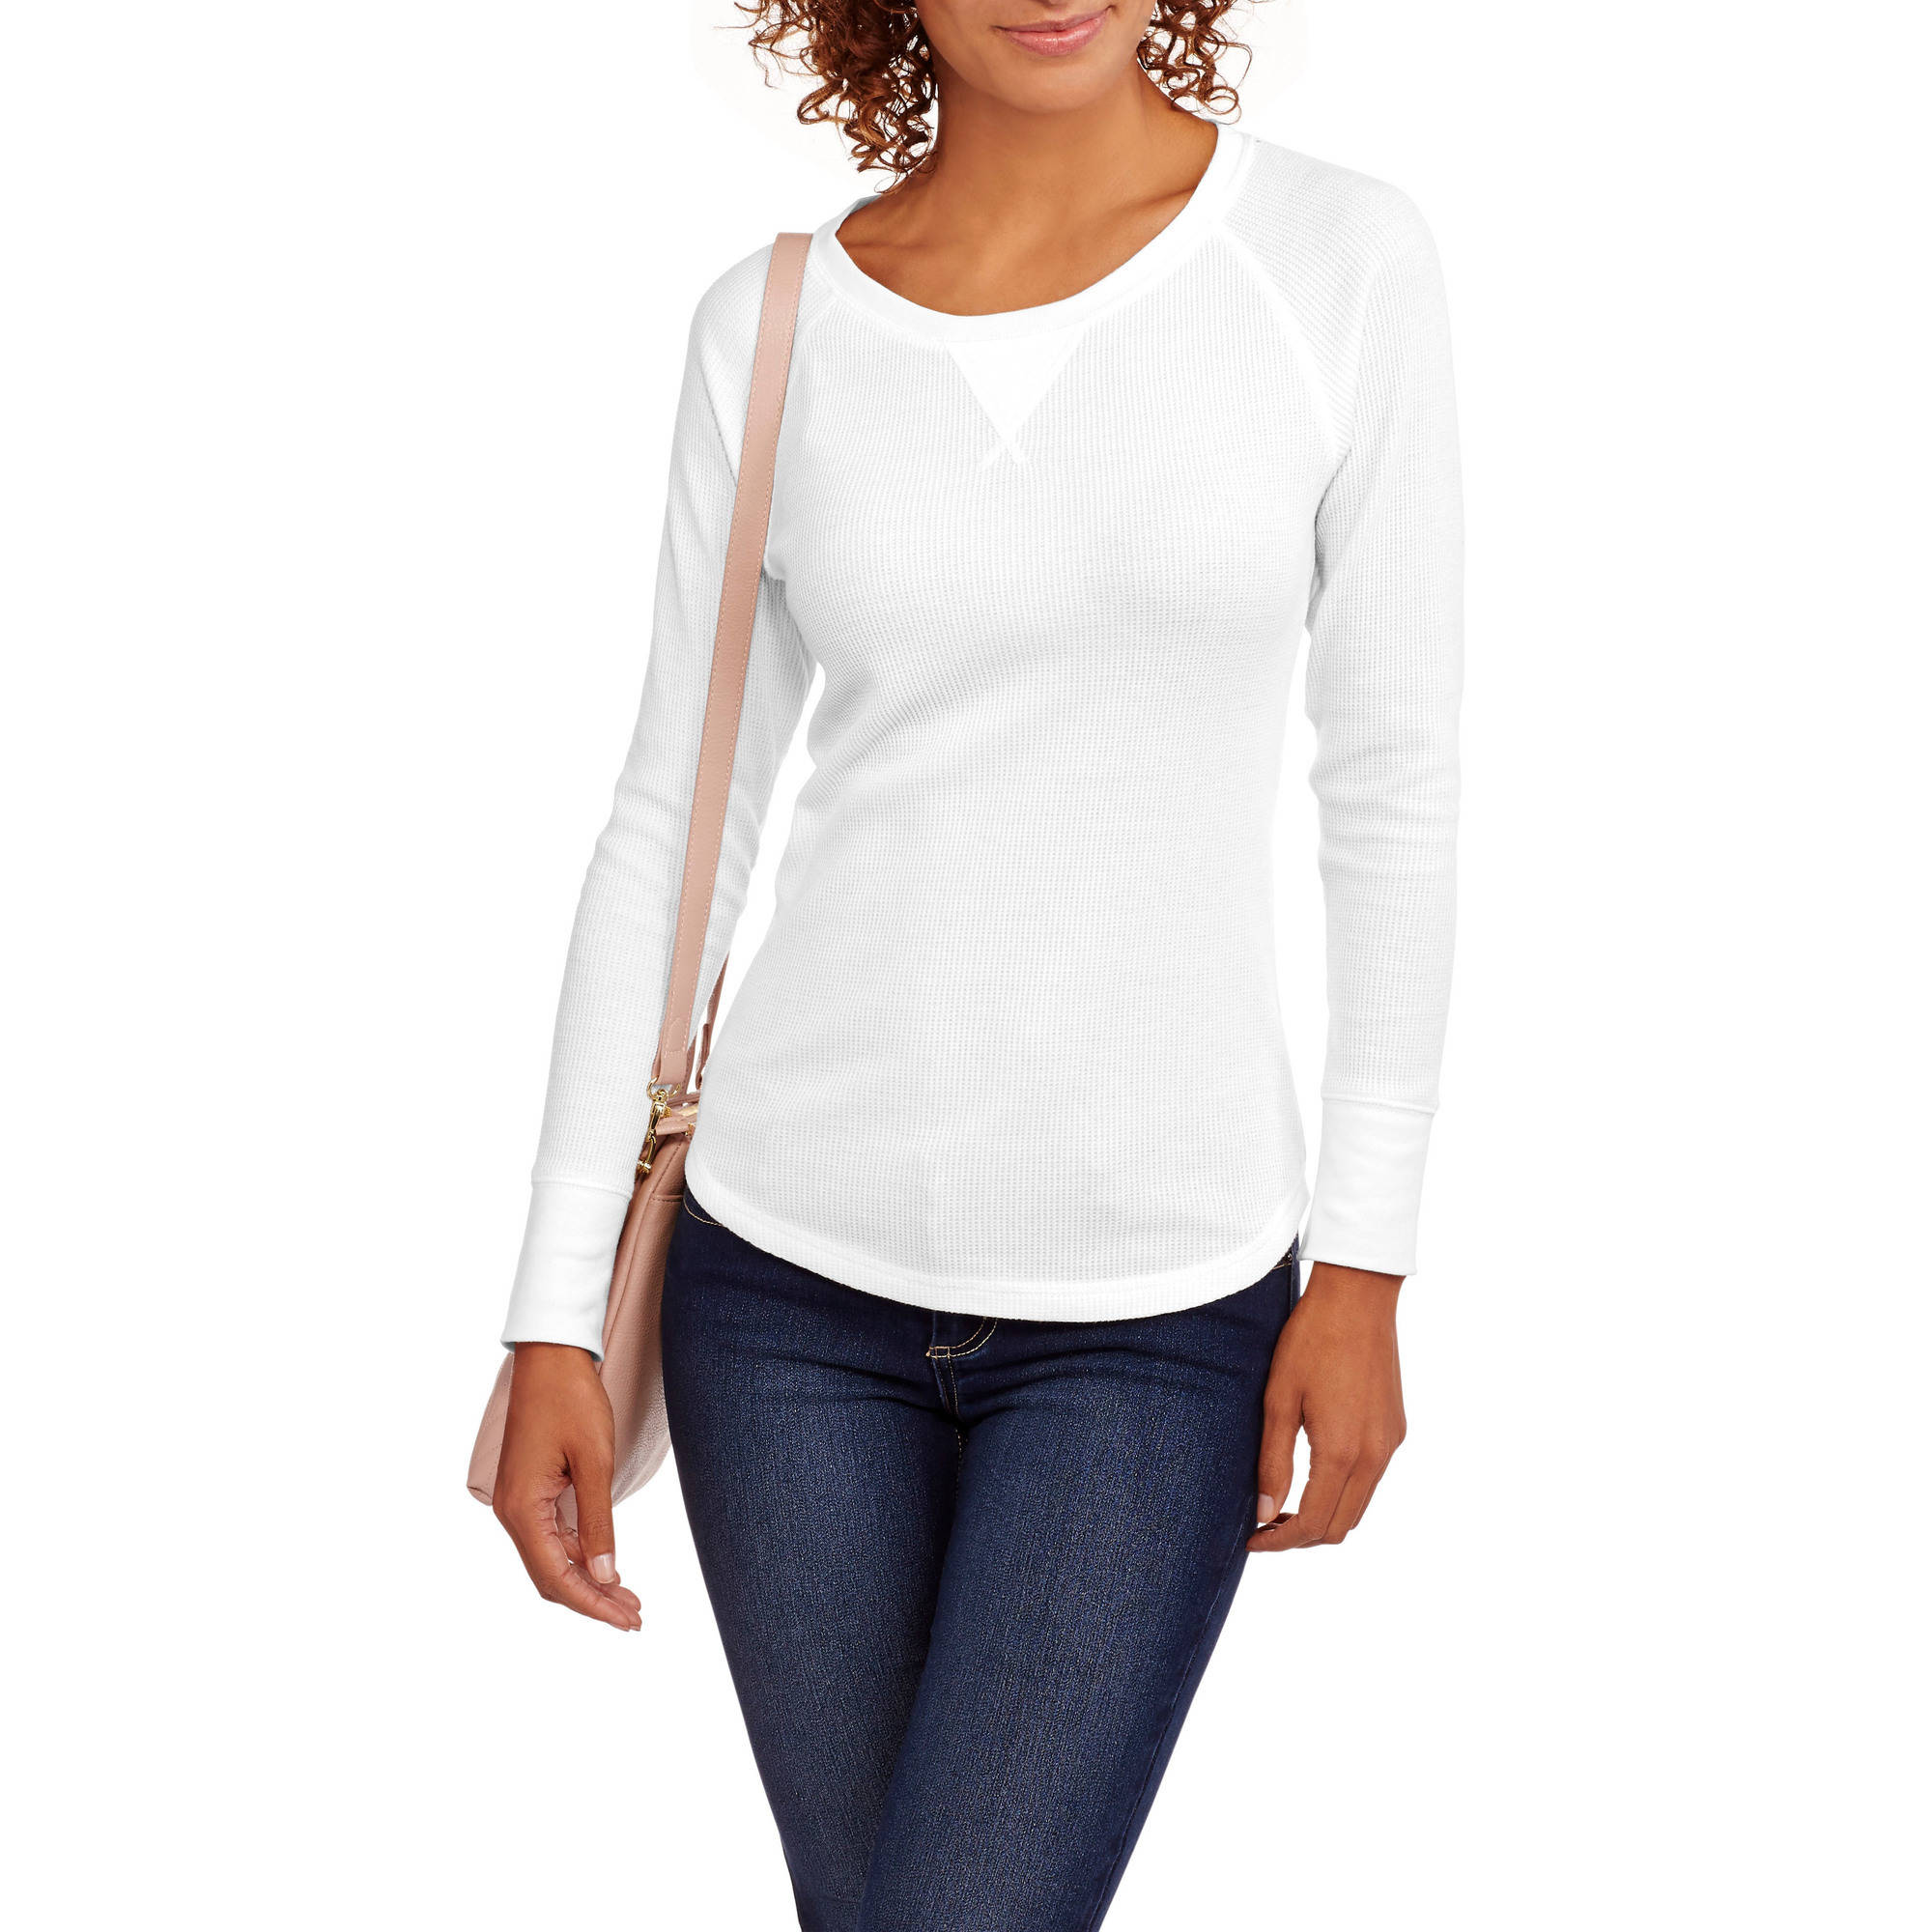 Faded Glory Women's Thermal Raglan Tee